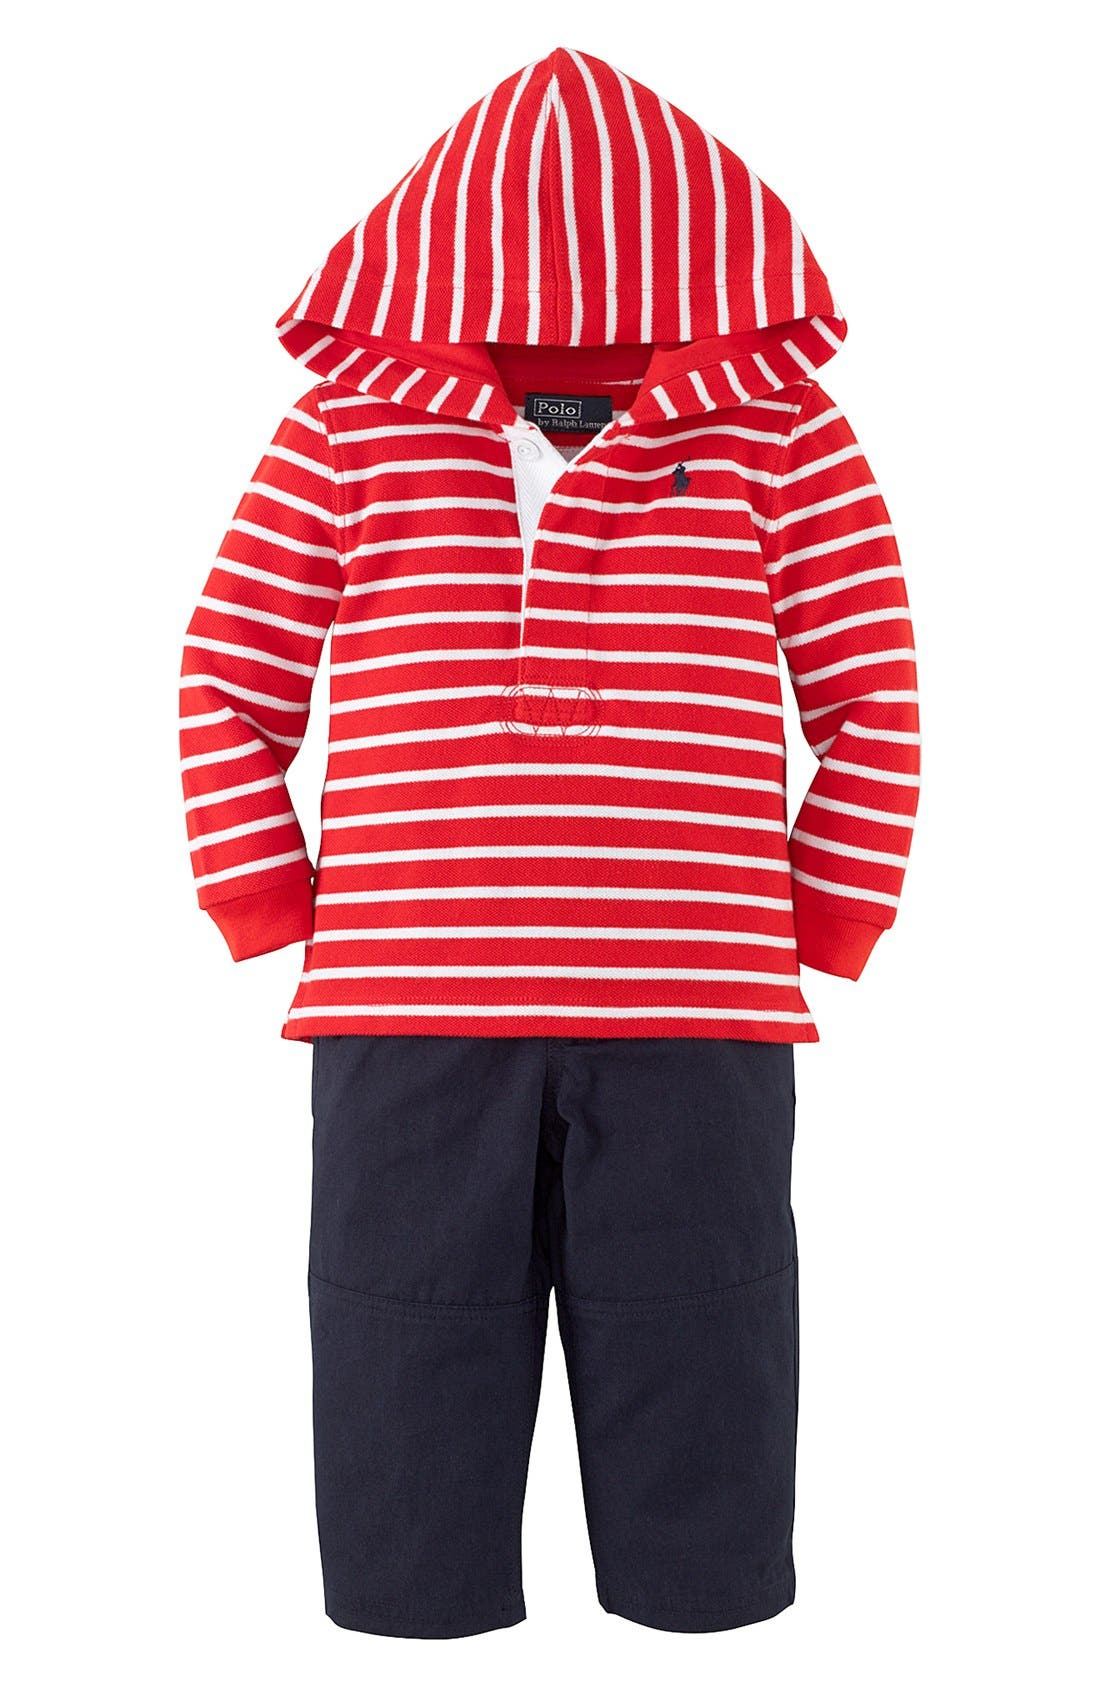 Main Image - Ralph Lauren Hooded T-Shirt & Woven Pants (Baby Boys)